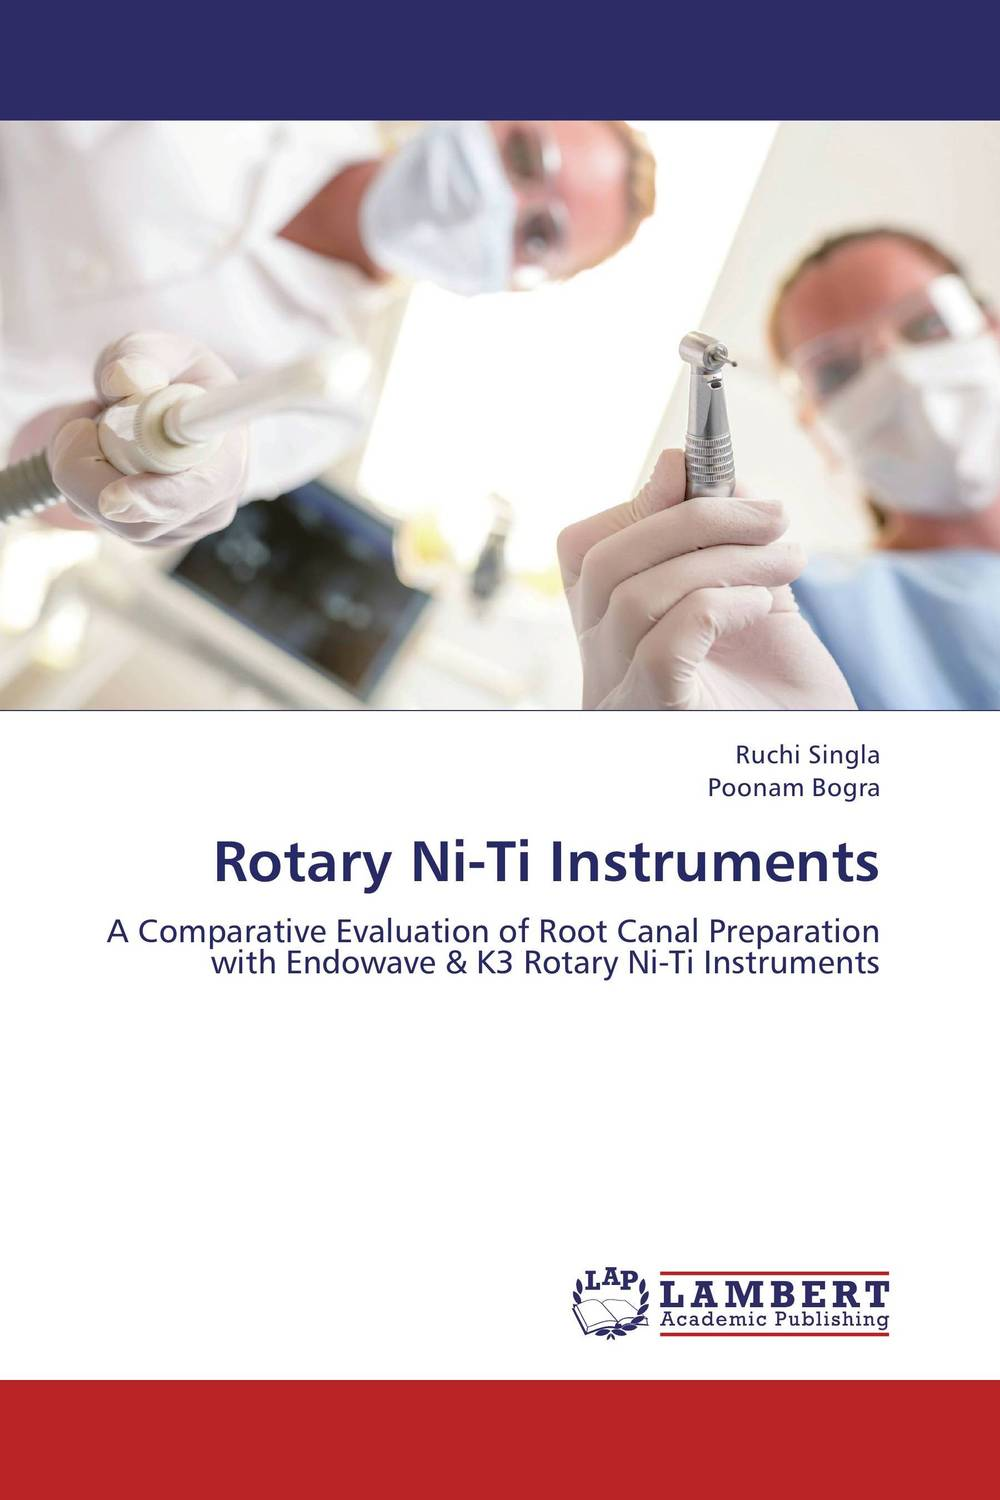 Rotary Ni-Ti Instruments the teeth with root canal students to practice root canal preparation and filling actually